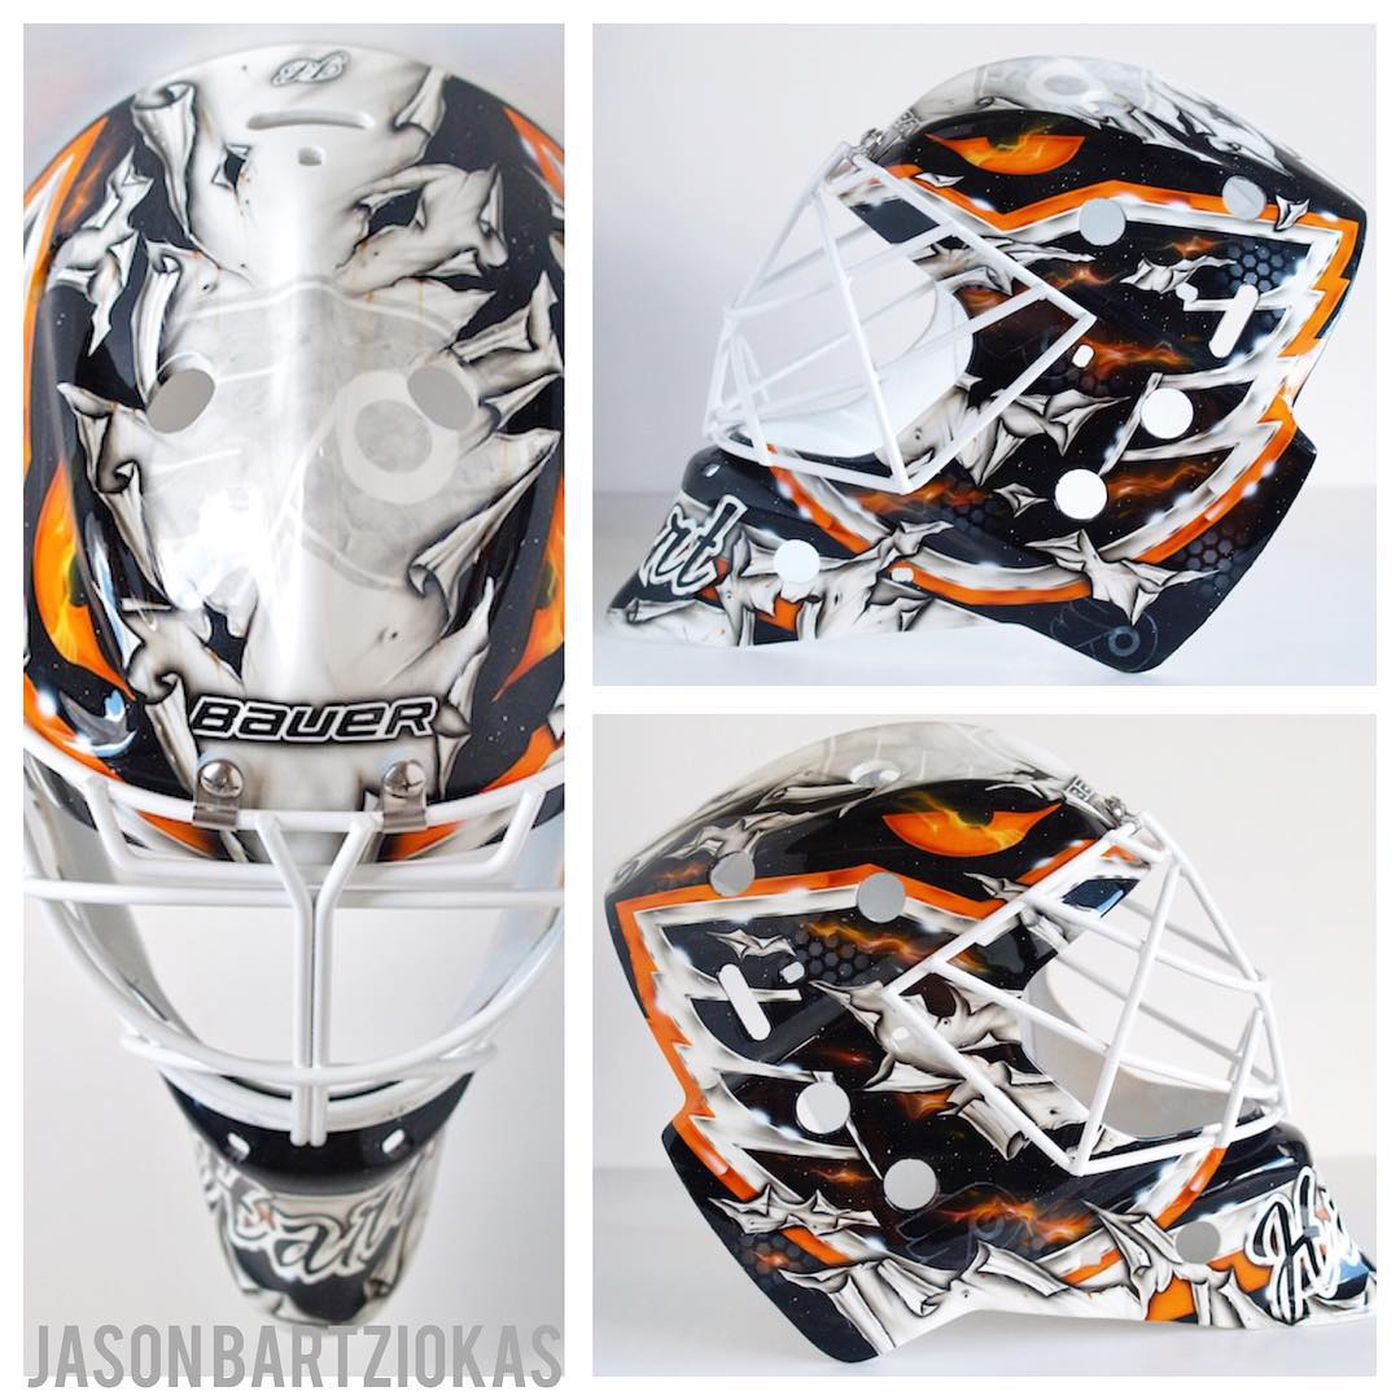 aba7b8dd648 Carter Hart has two new goalie masks, and they're glorious - Broad Street  Hockey